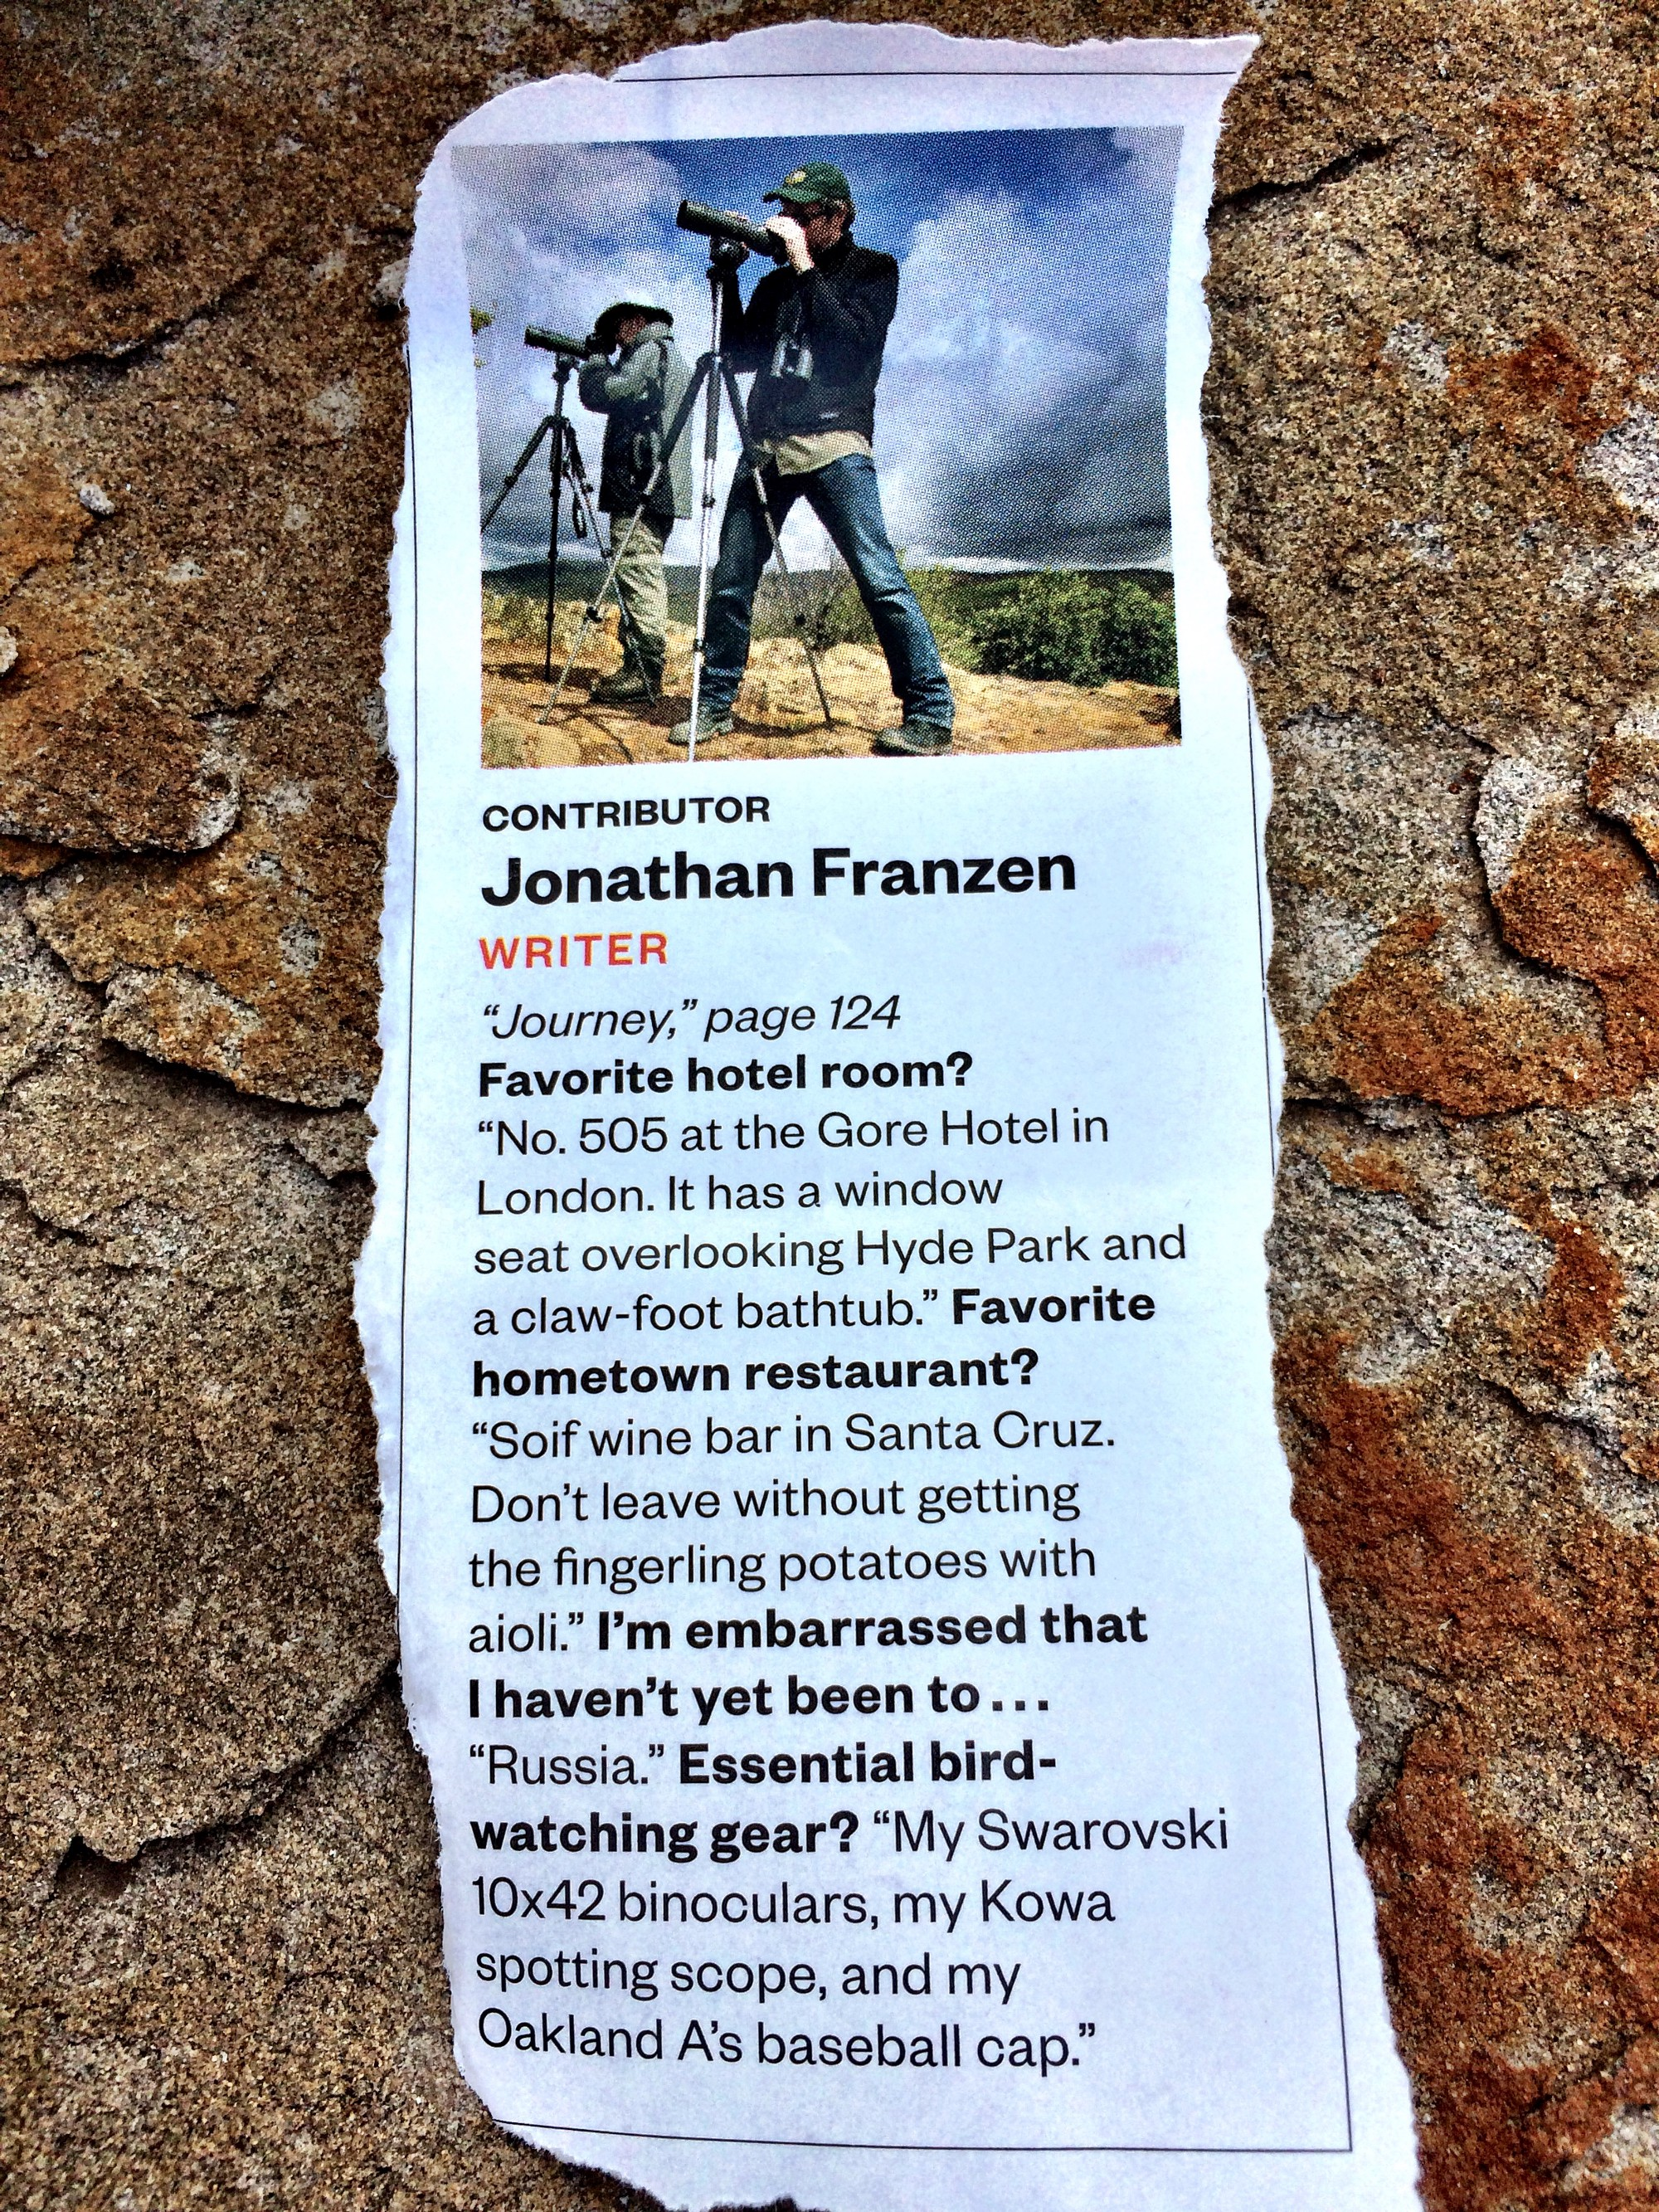 """jonathan franzen harpers essay 1996 I have never read a jonathan franzen novel and i never will  reprinted here  for the first time is franzen's controversial 1996 investigation of the fate of the  american novel in what became known as """"the harper's essay,"""" as."""